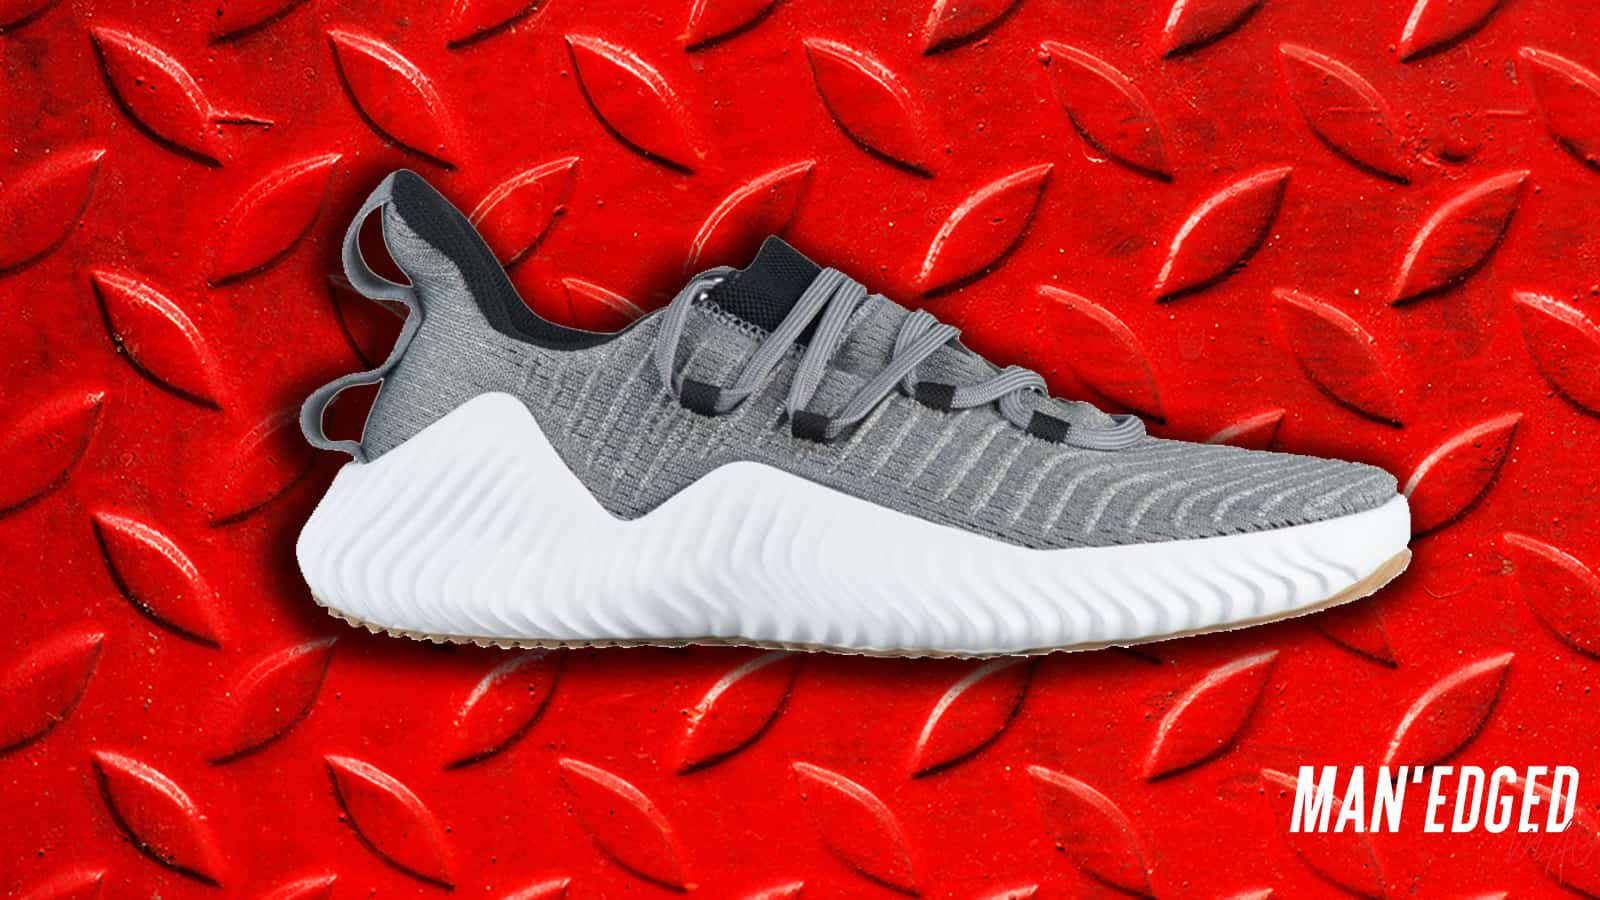 The best gifts for men - our top 19 gifting ideas that guys will love - adidas alphabounce trainer from eastbay.com